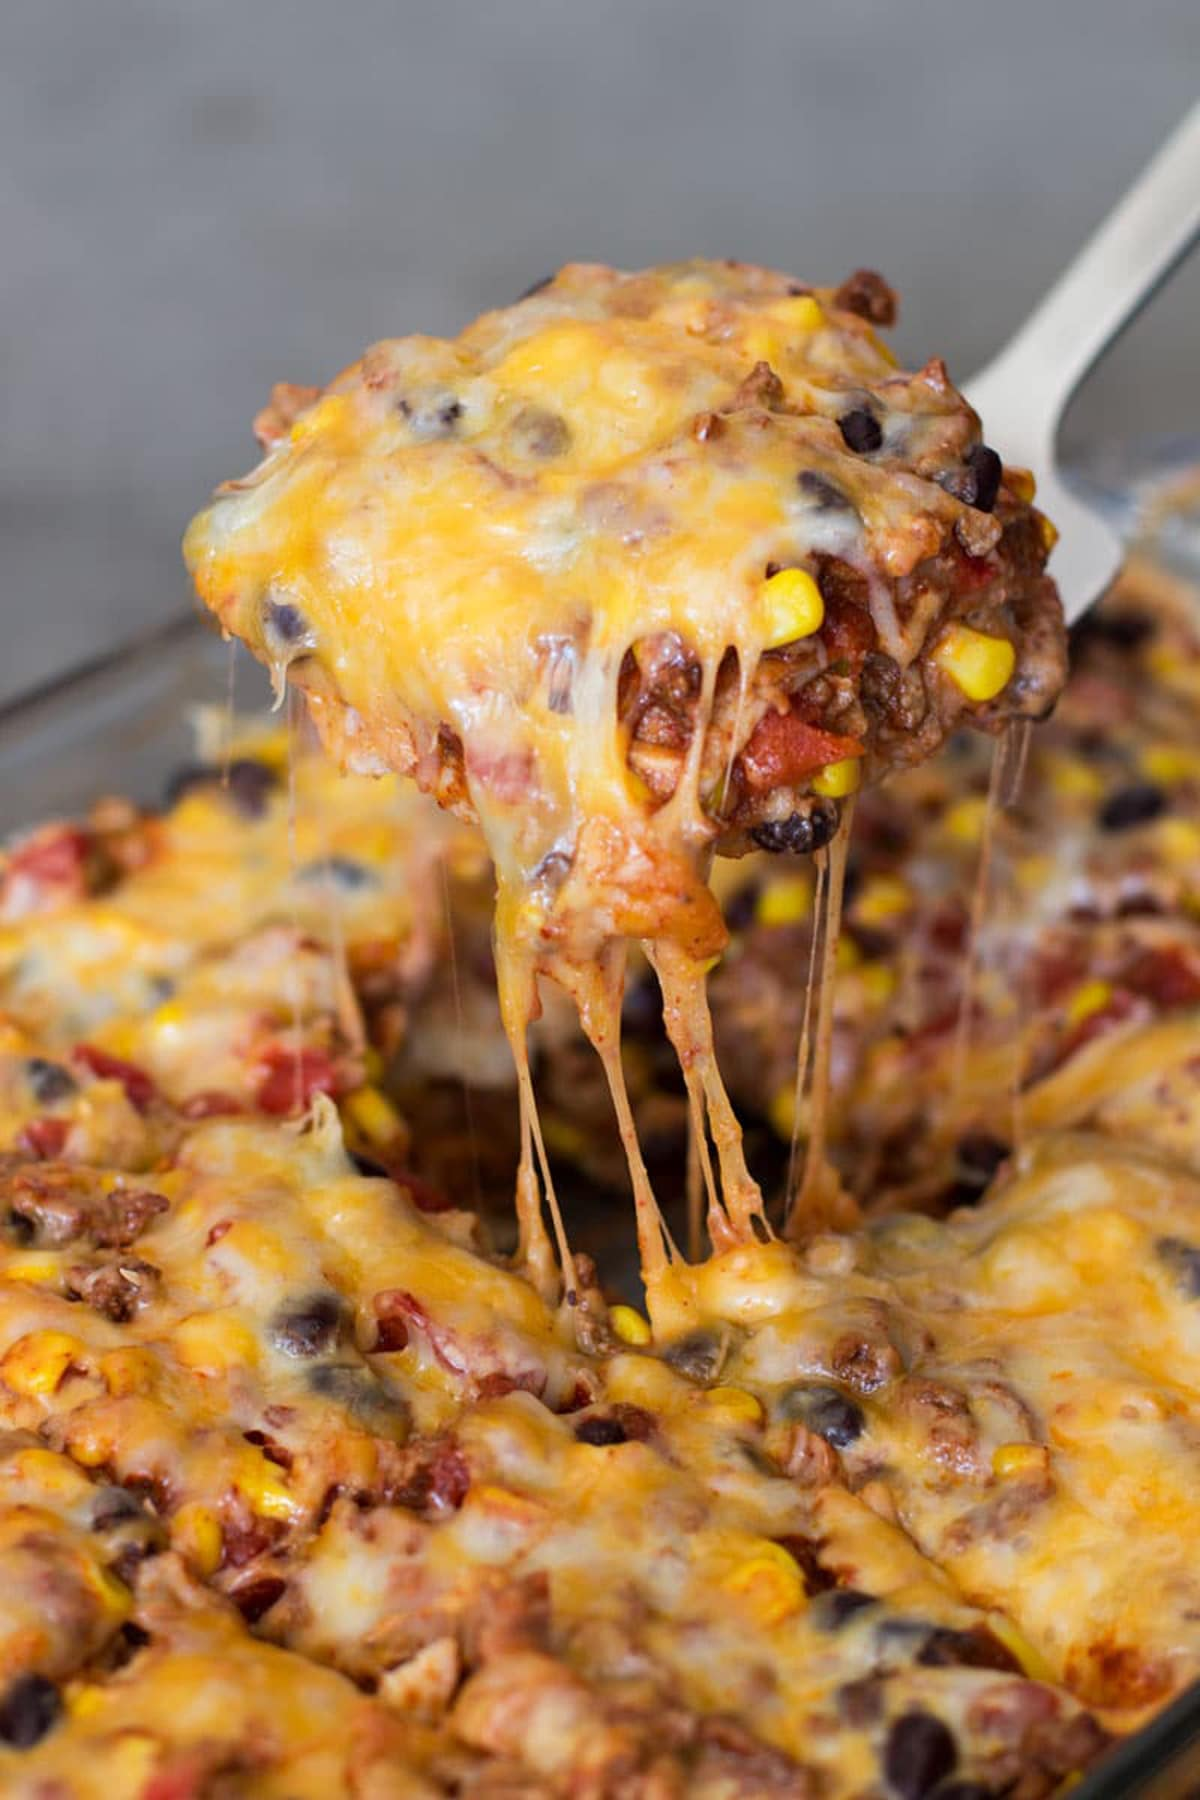 Spatula containing a piece of mexican casserole topped with melted cheese.